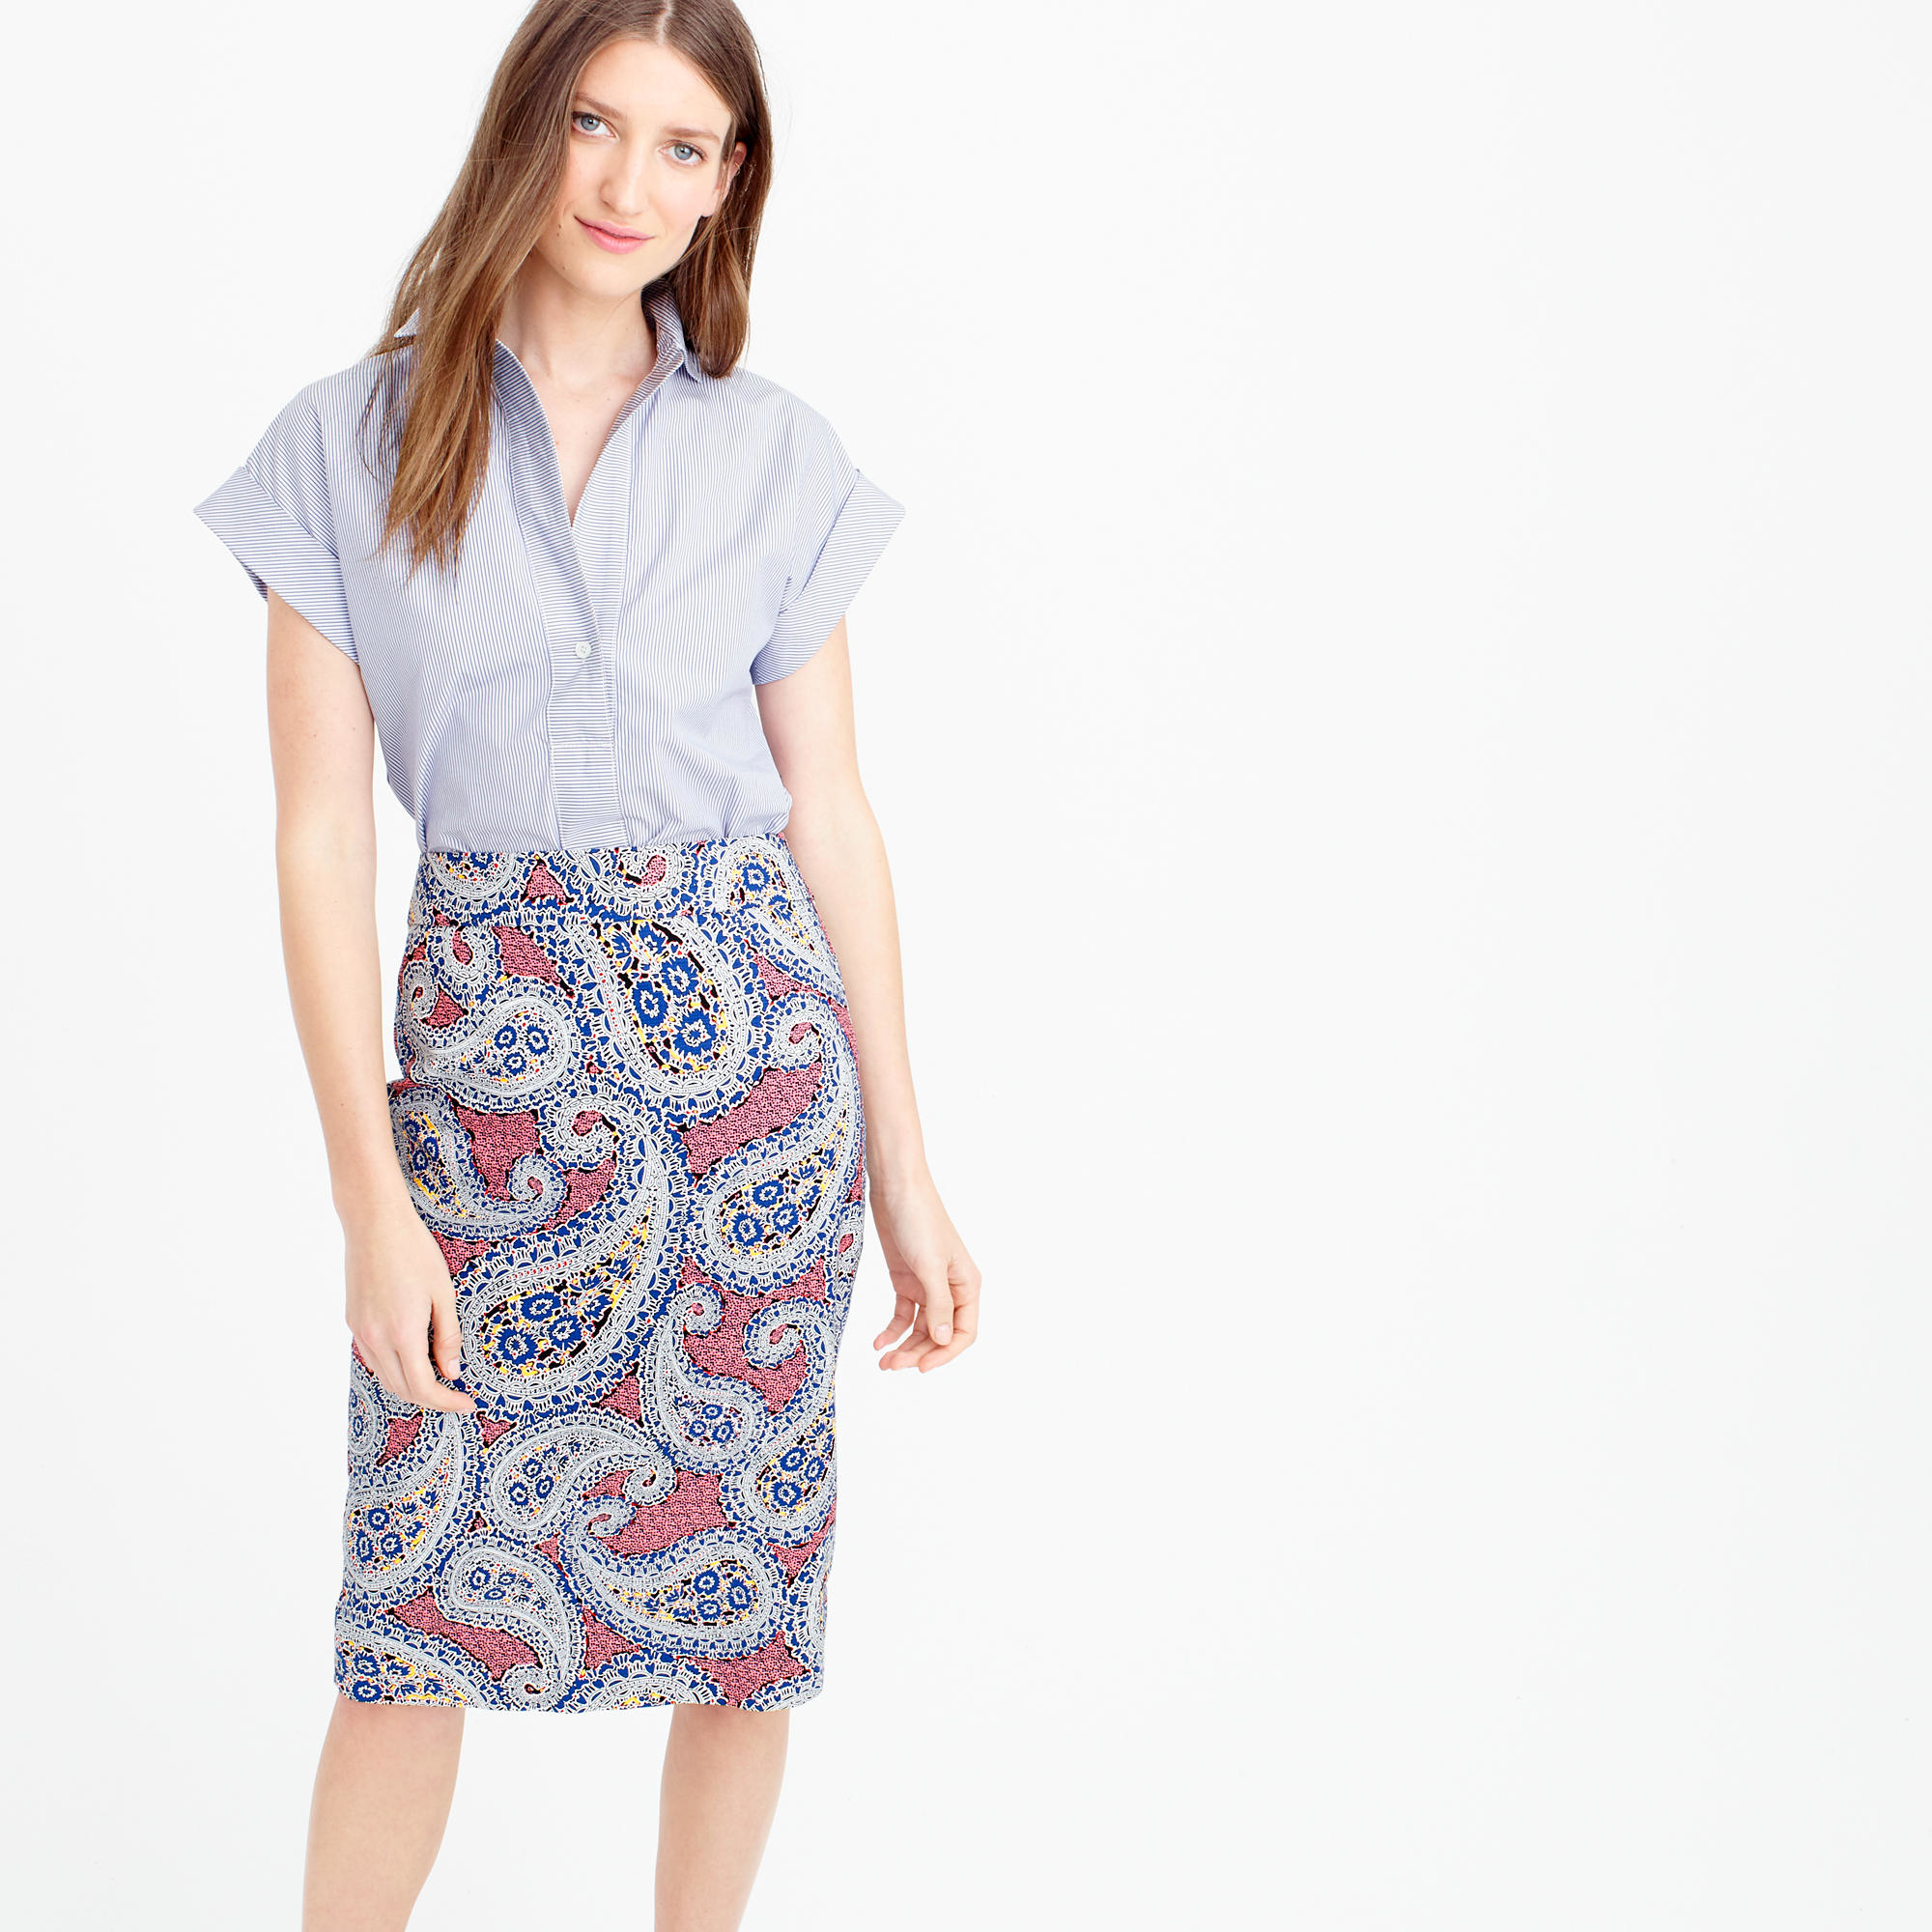 j crew no 2 pencil skirt in paisley in blue lyst